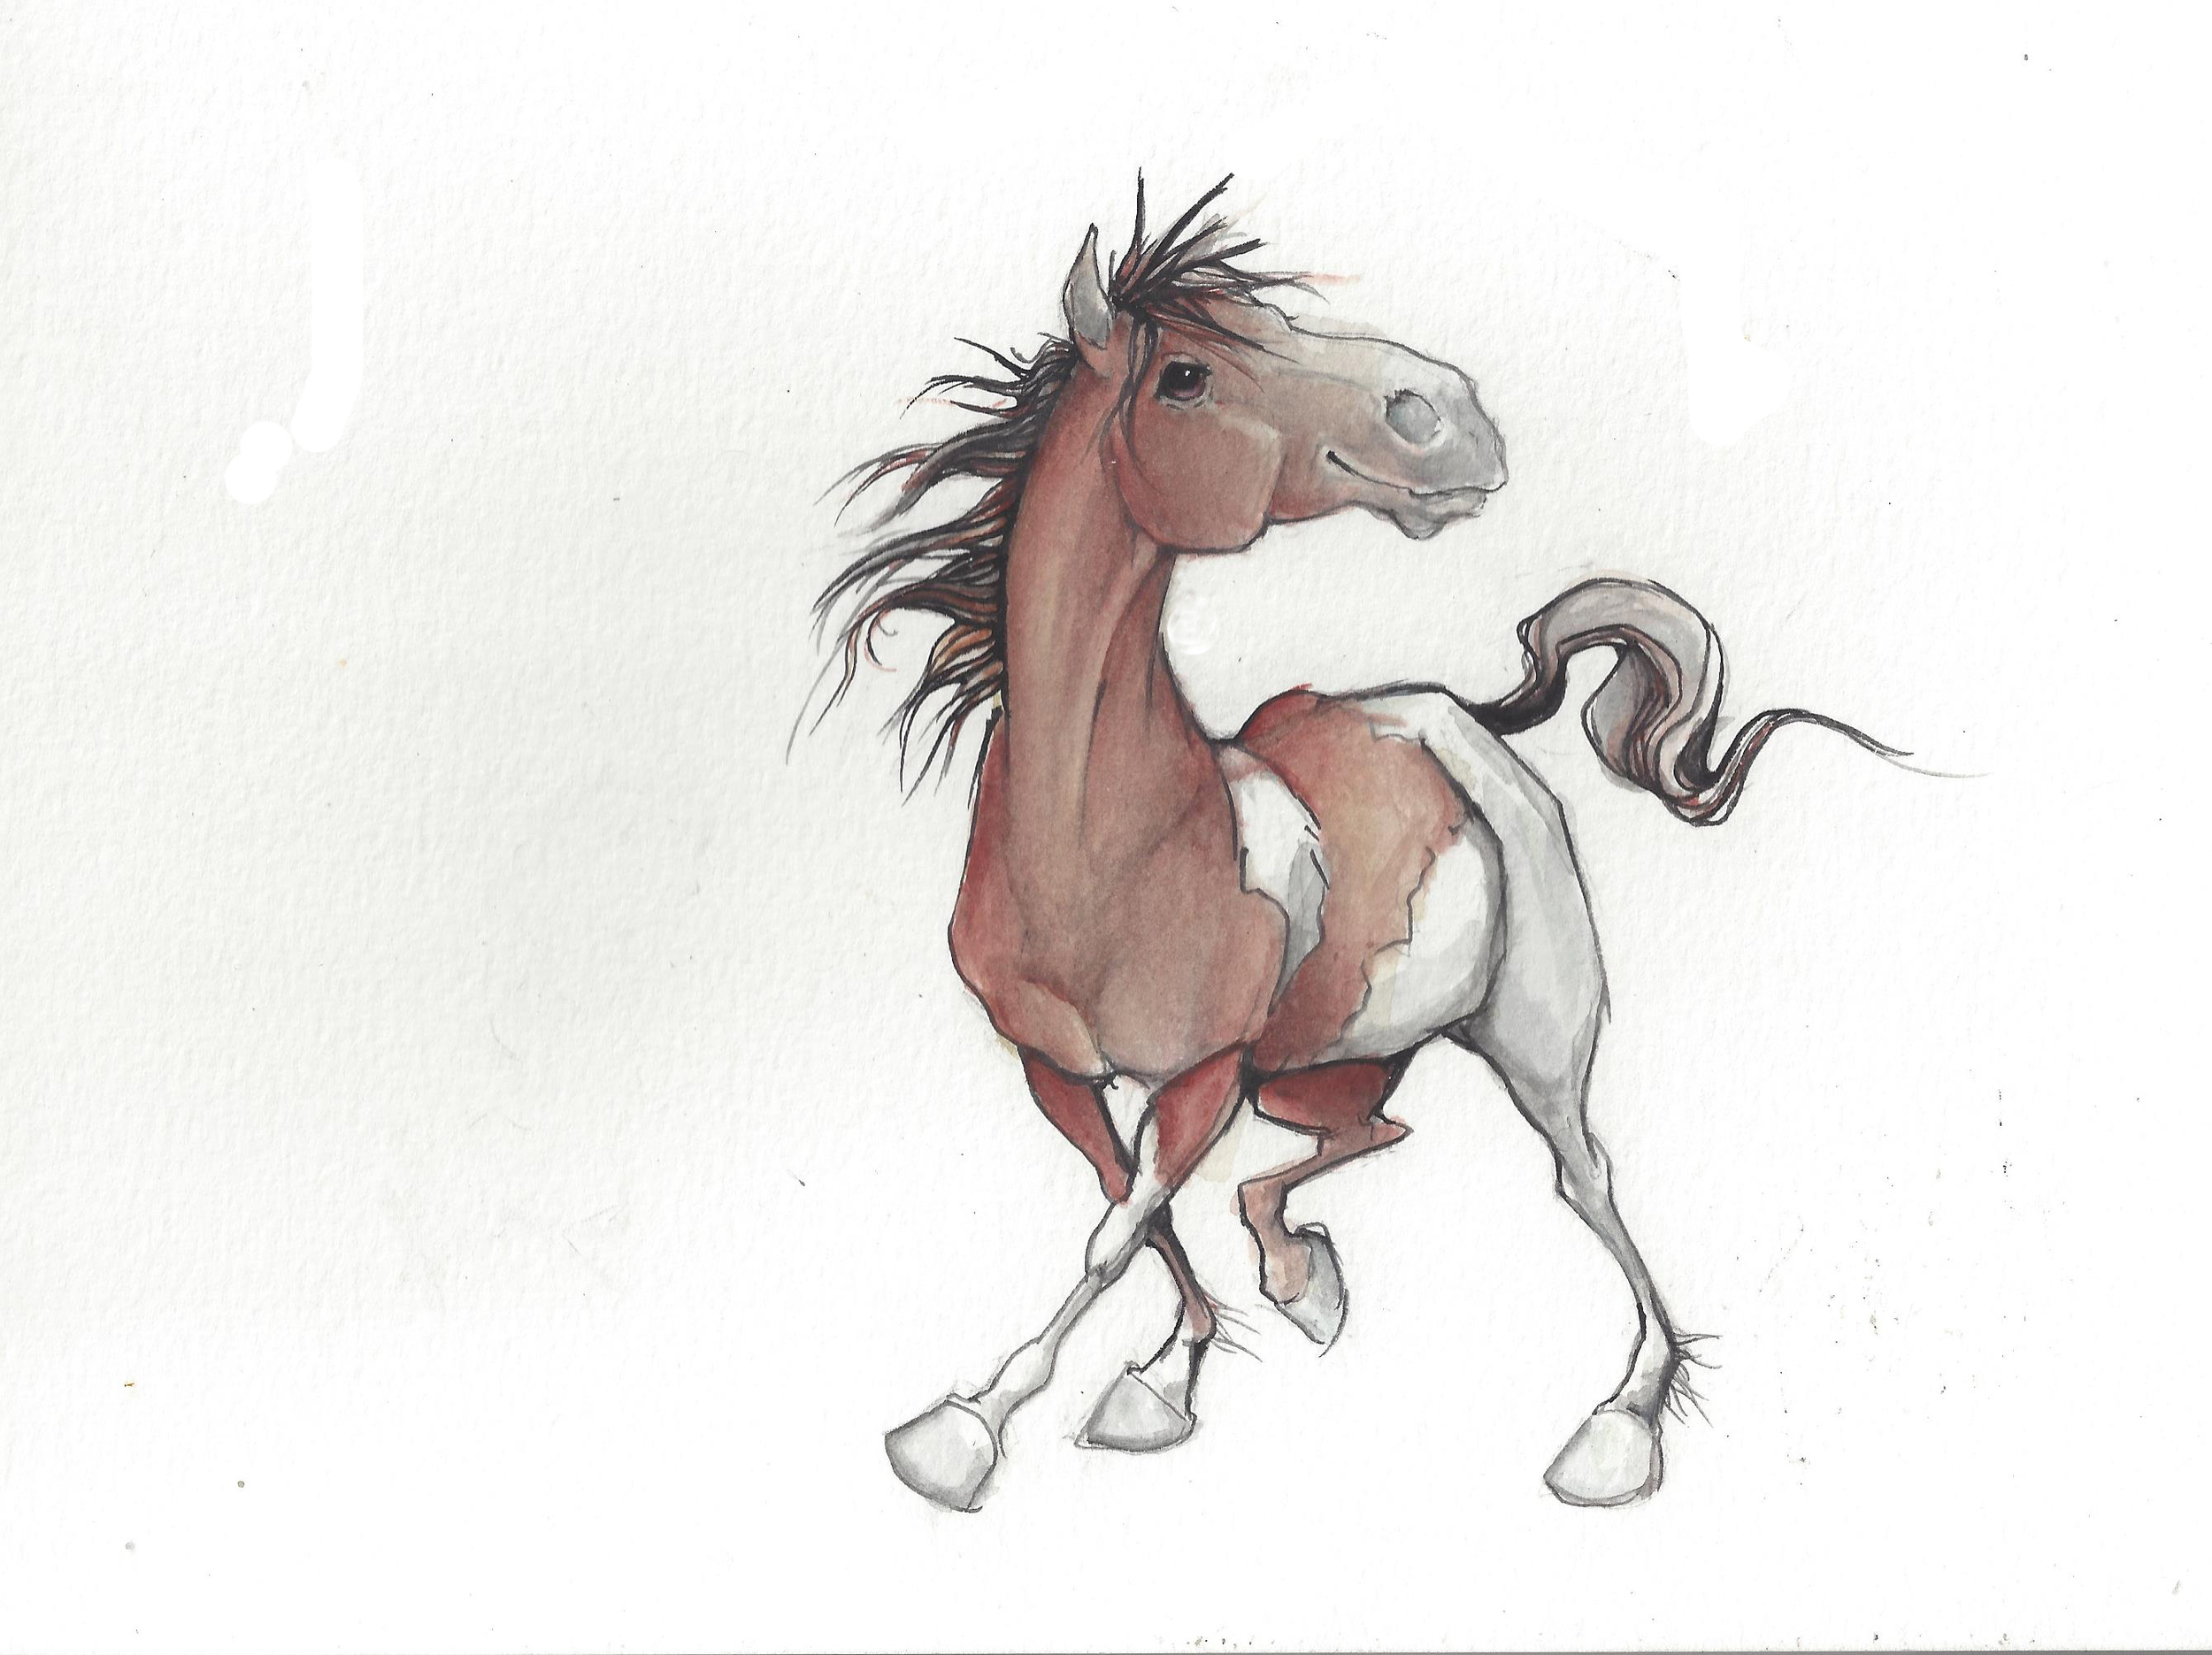 The pony I fell in love with